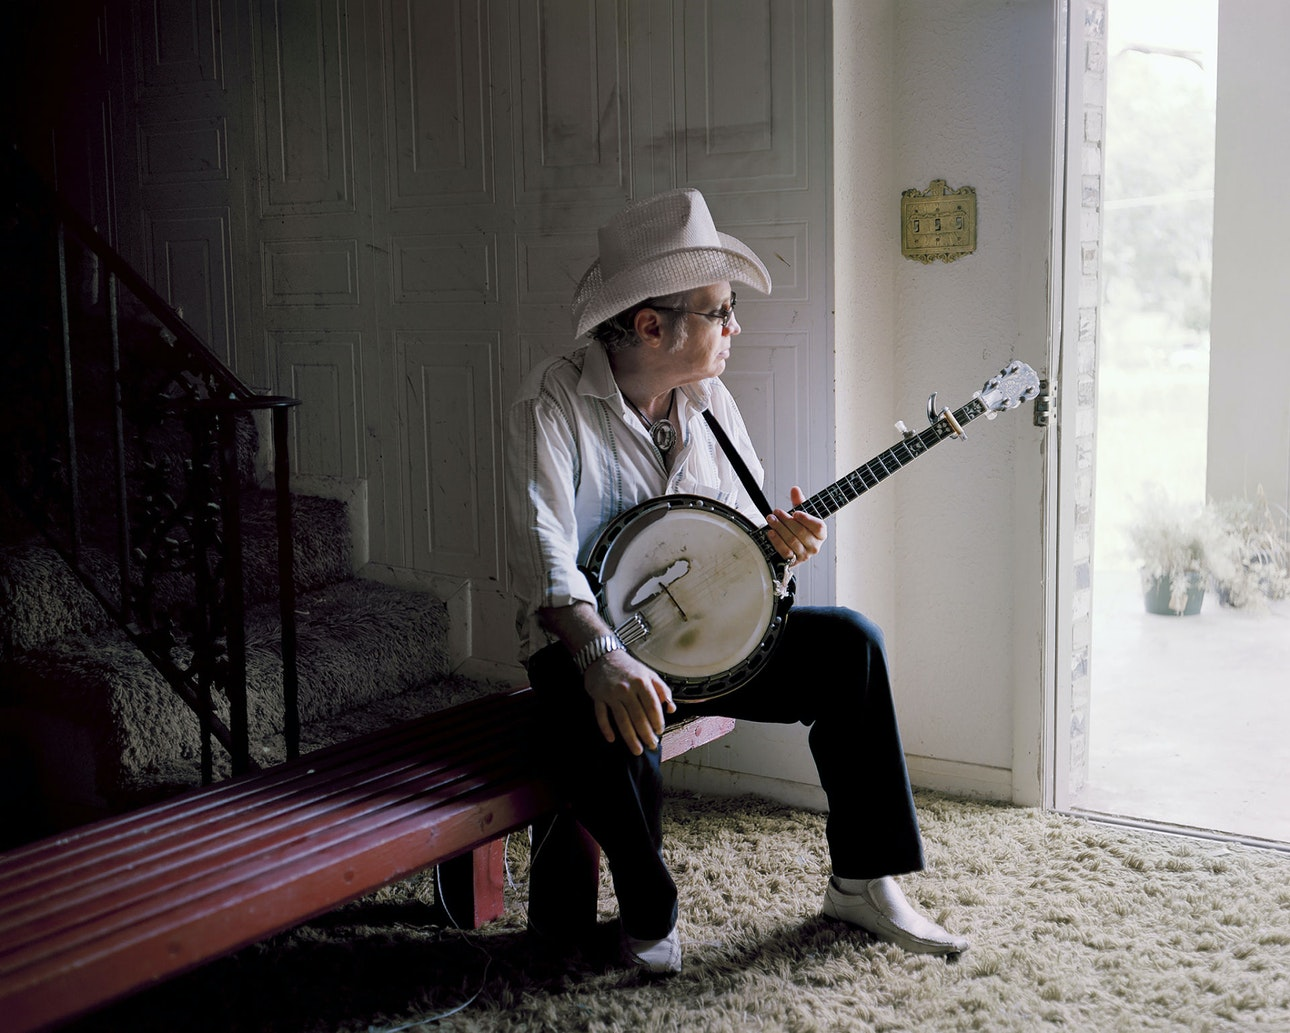 Banjo-pickin' Wade Hill. Knoxville, TN. 2014.